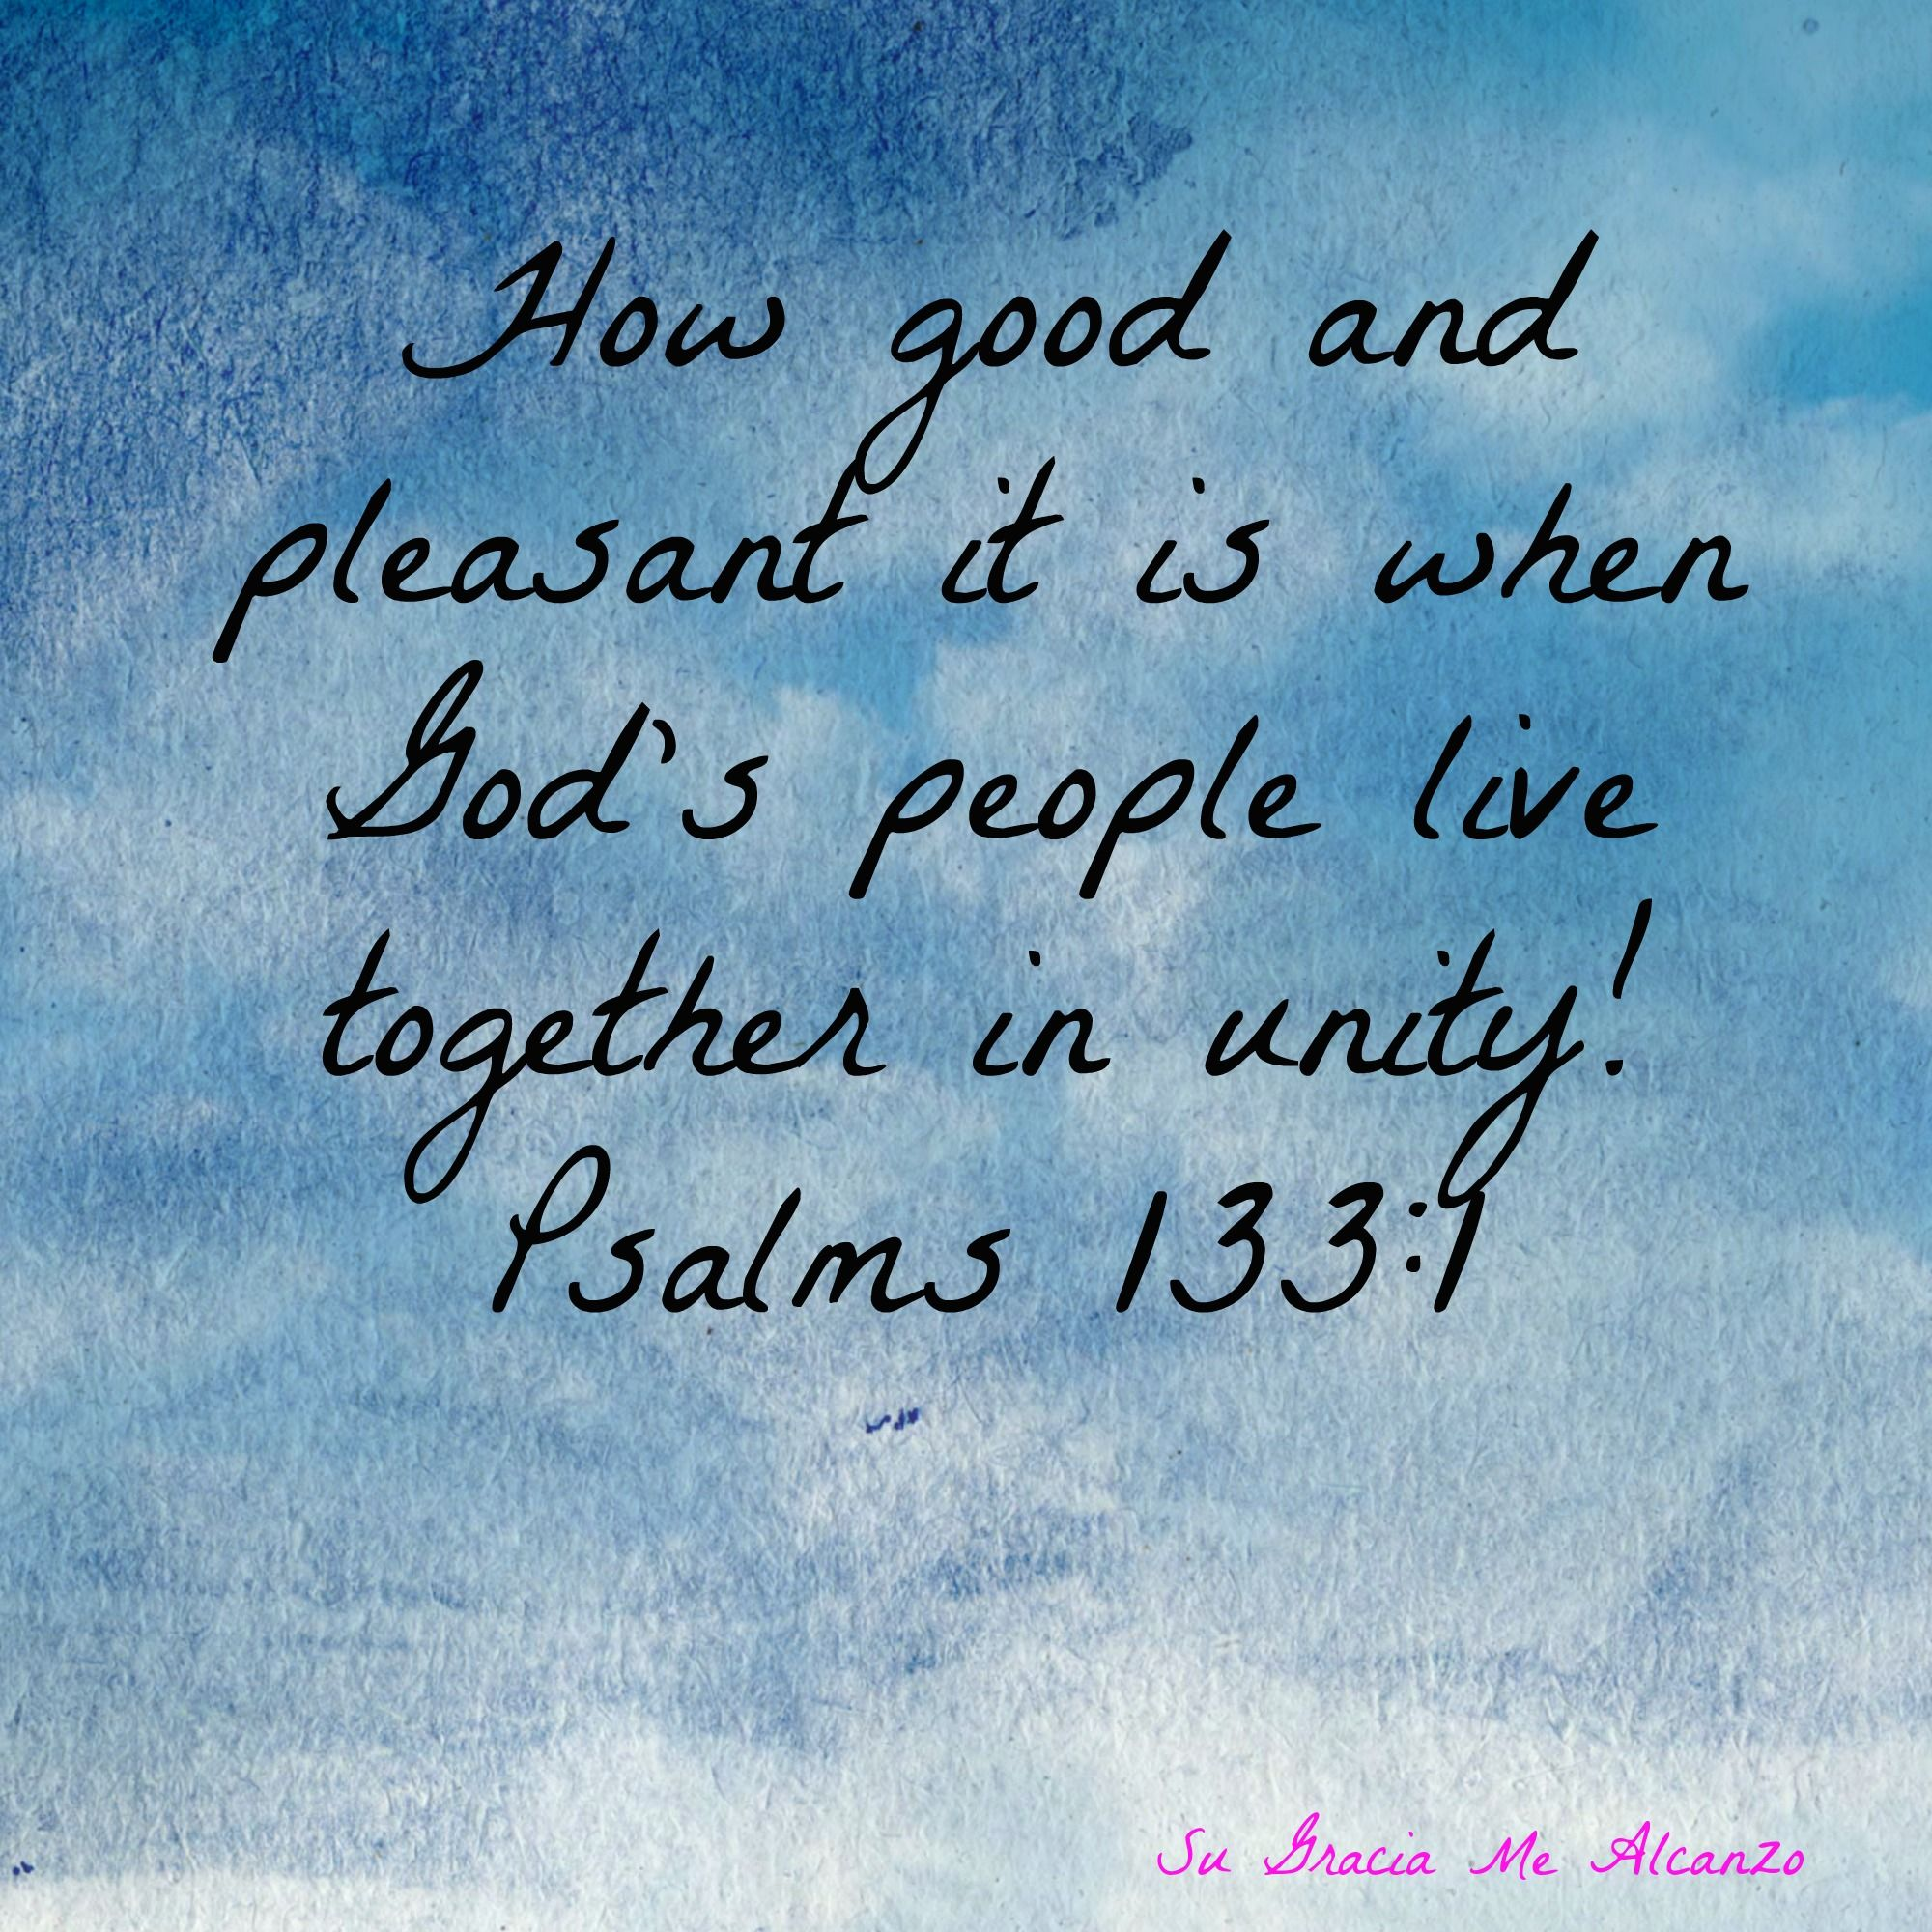 Bible Quotes On Unity. QuotesGram